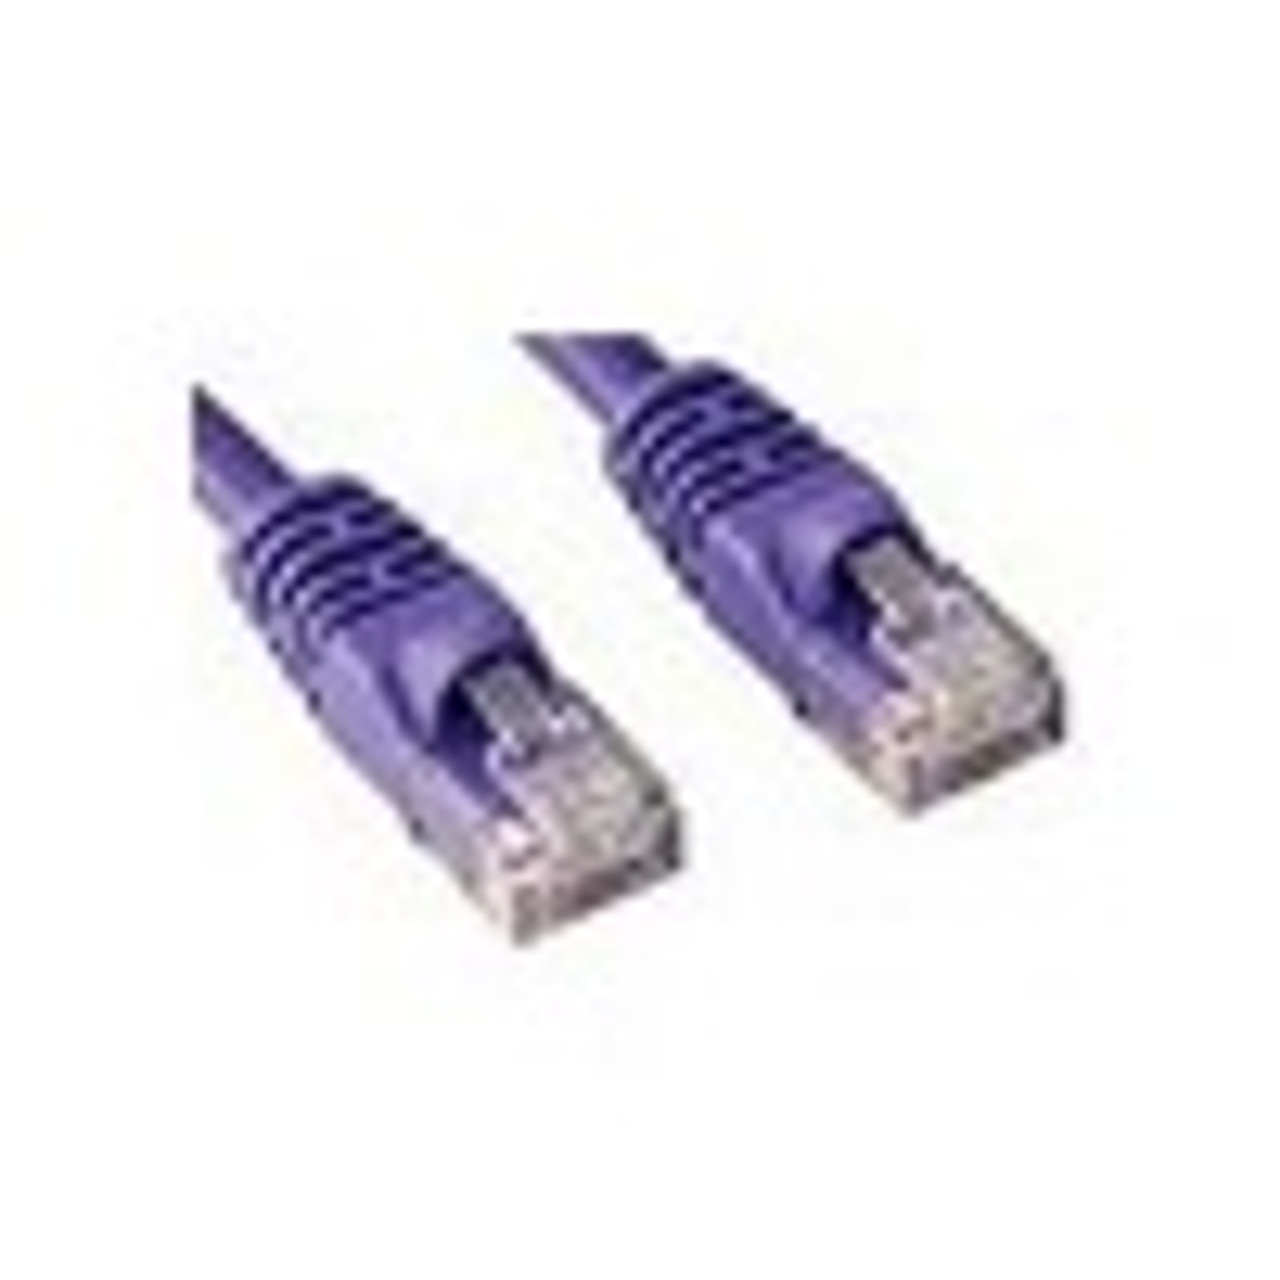 Product image for CAT5e PATCH CORD  2M PURPLE Network Cable 45347   CX Computer Superstore